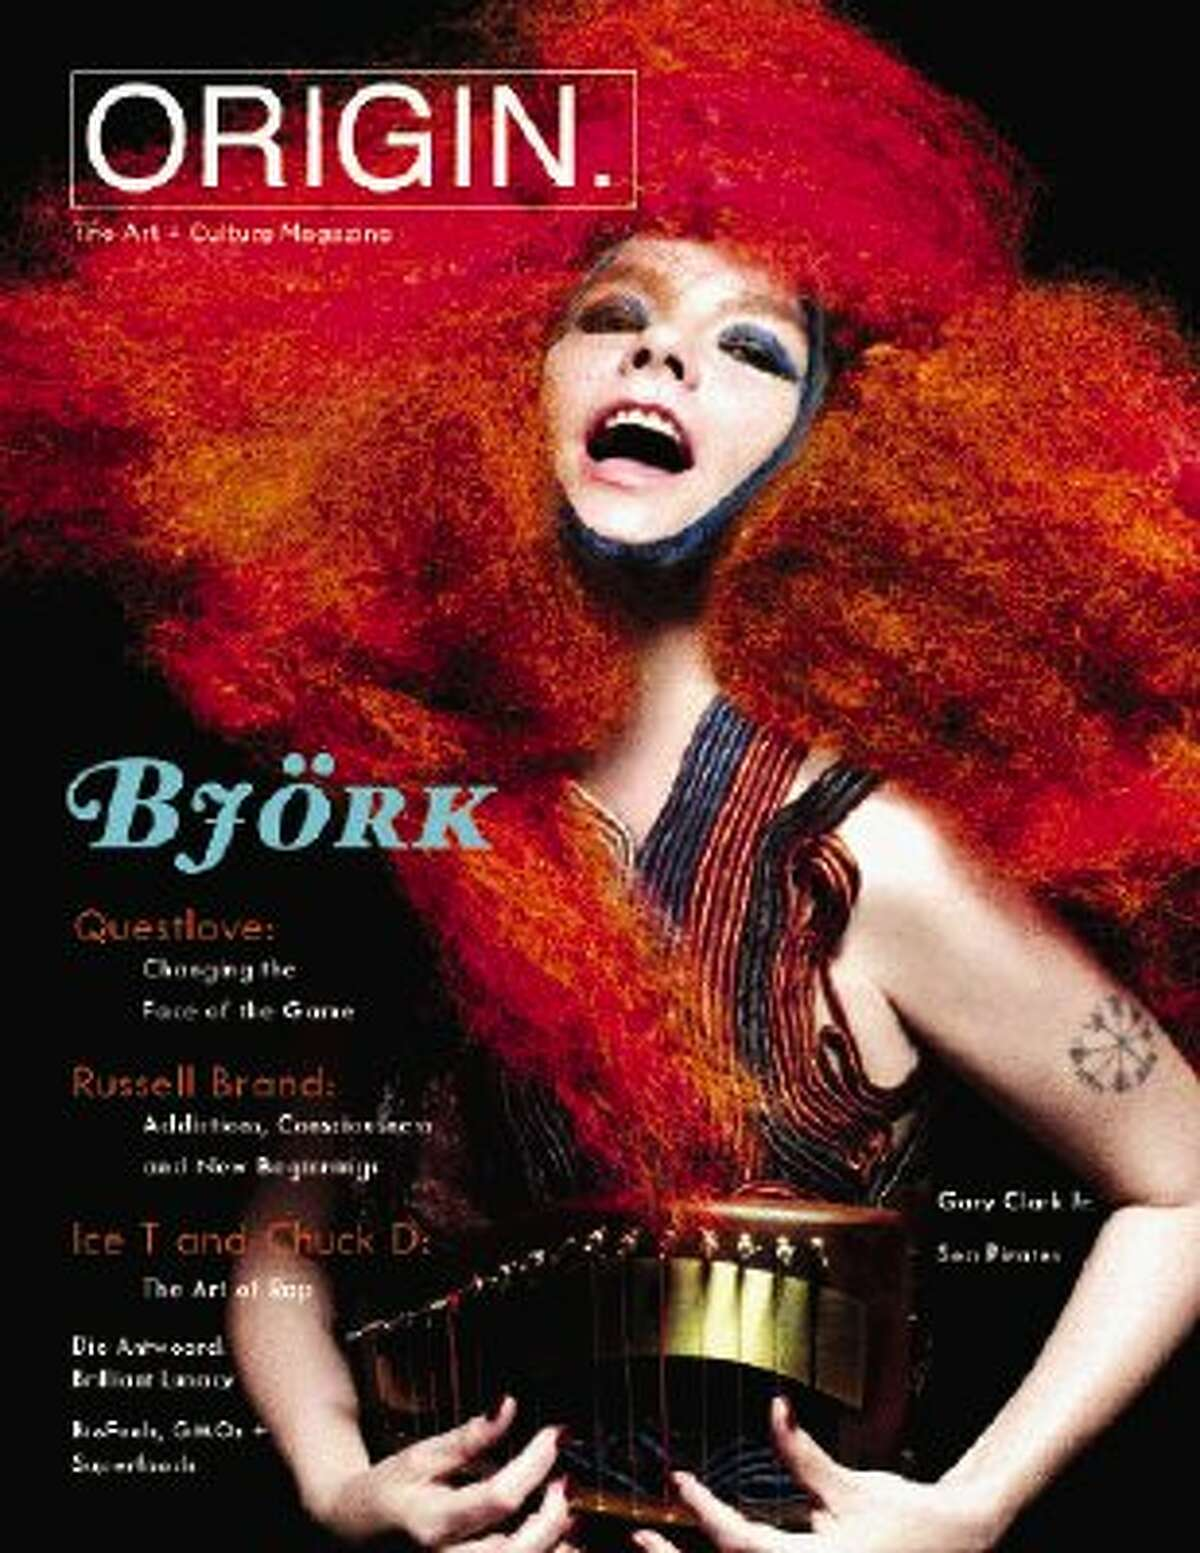 Counterculture favorite musician and performance artist Björk is just one of ORIGIN Magazine's many recent interview subjects. ORIGIN, an art and yoga publication distributed nationally, was founded by Atascocita native Maranda Pleasant.